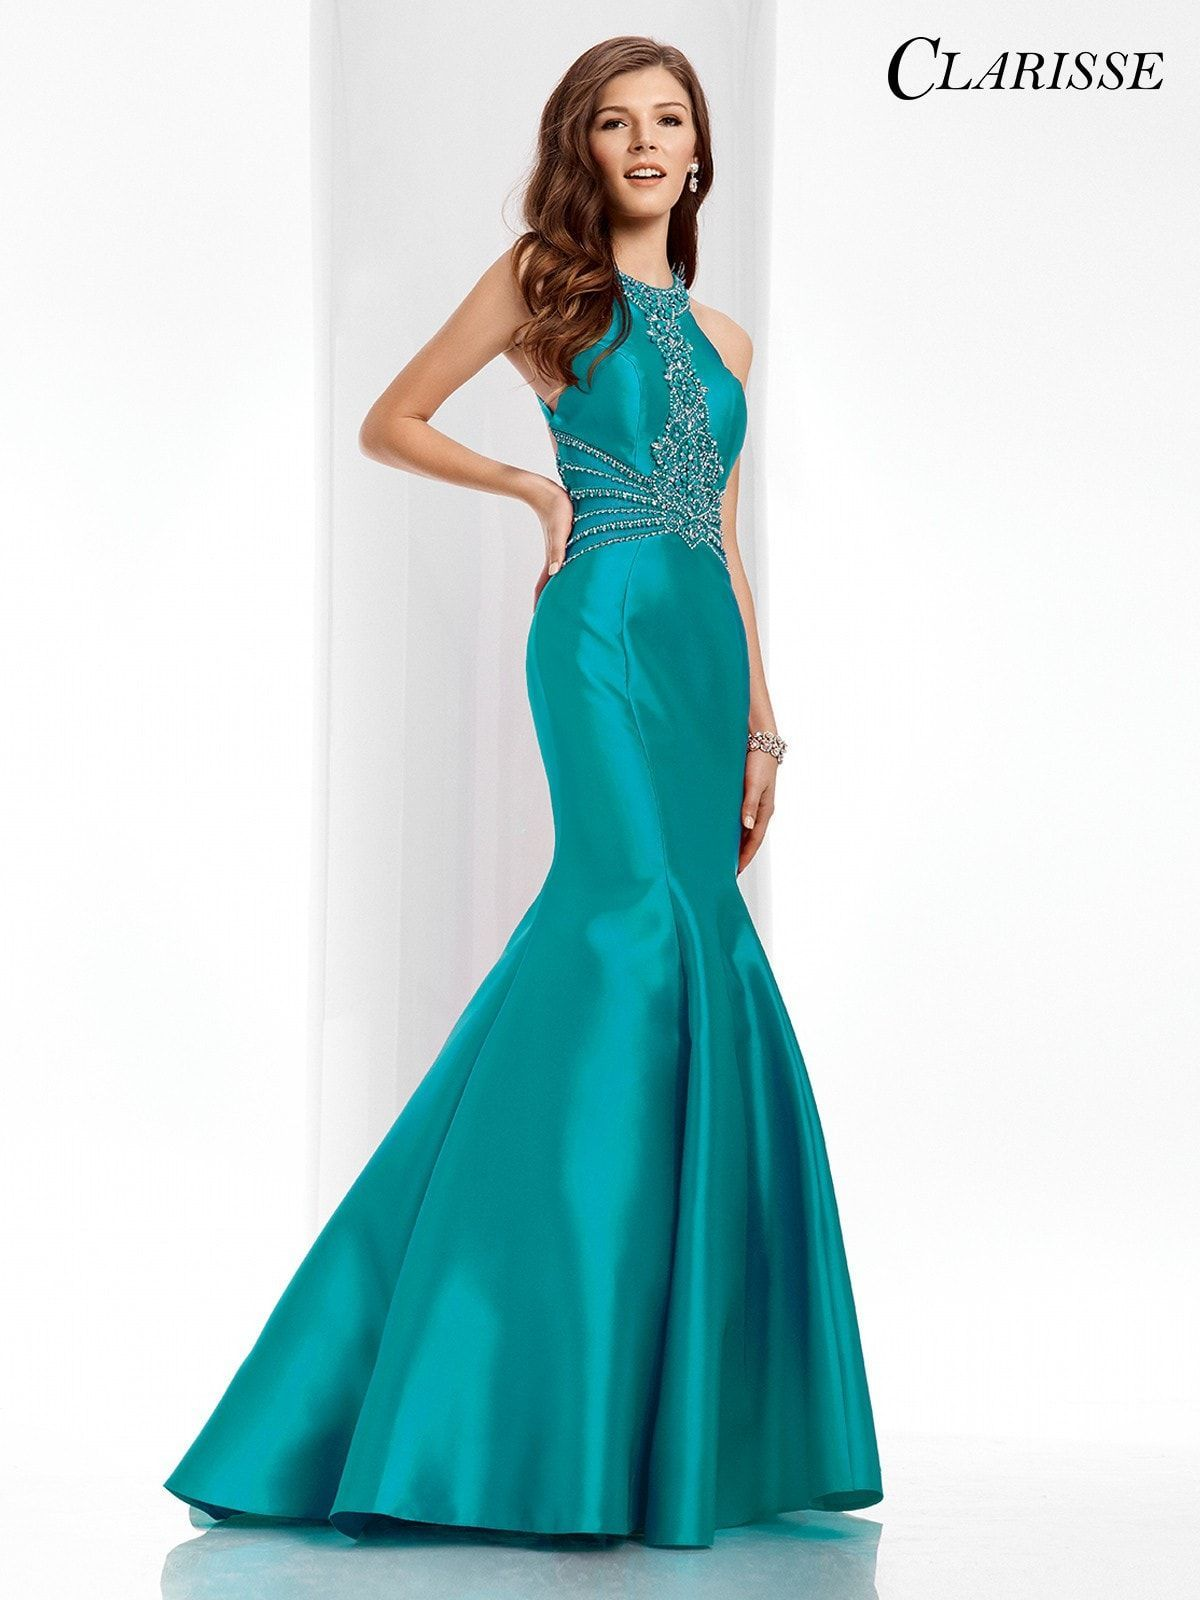 Clarisse prom turquoise mermaid prom dress fashion in